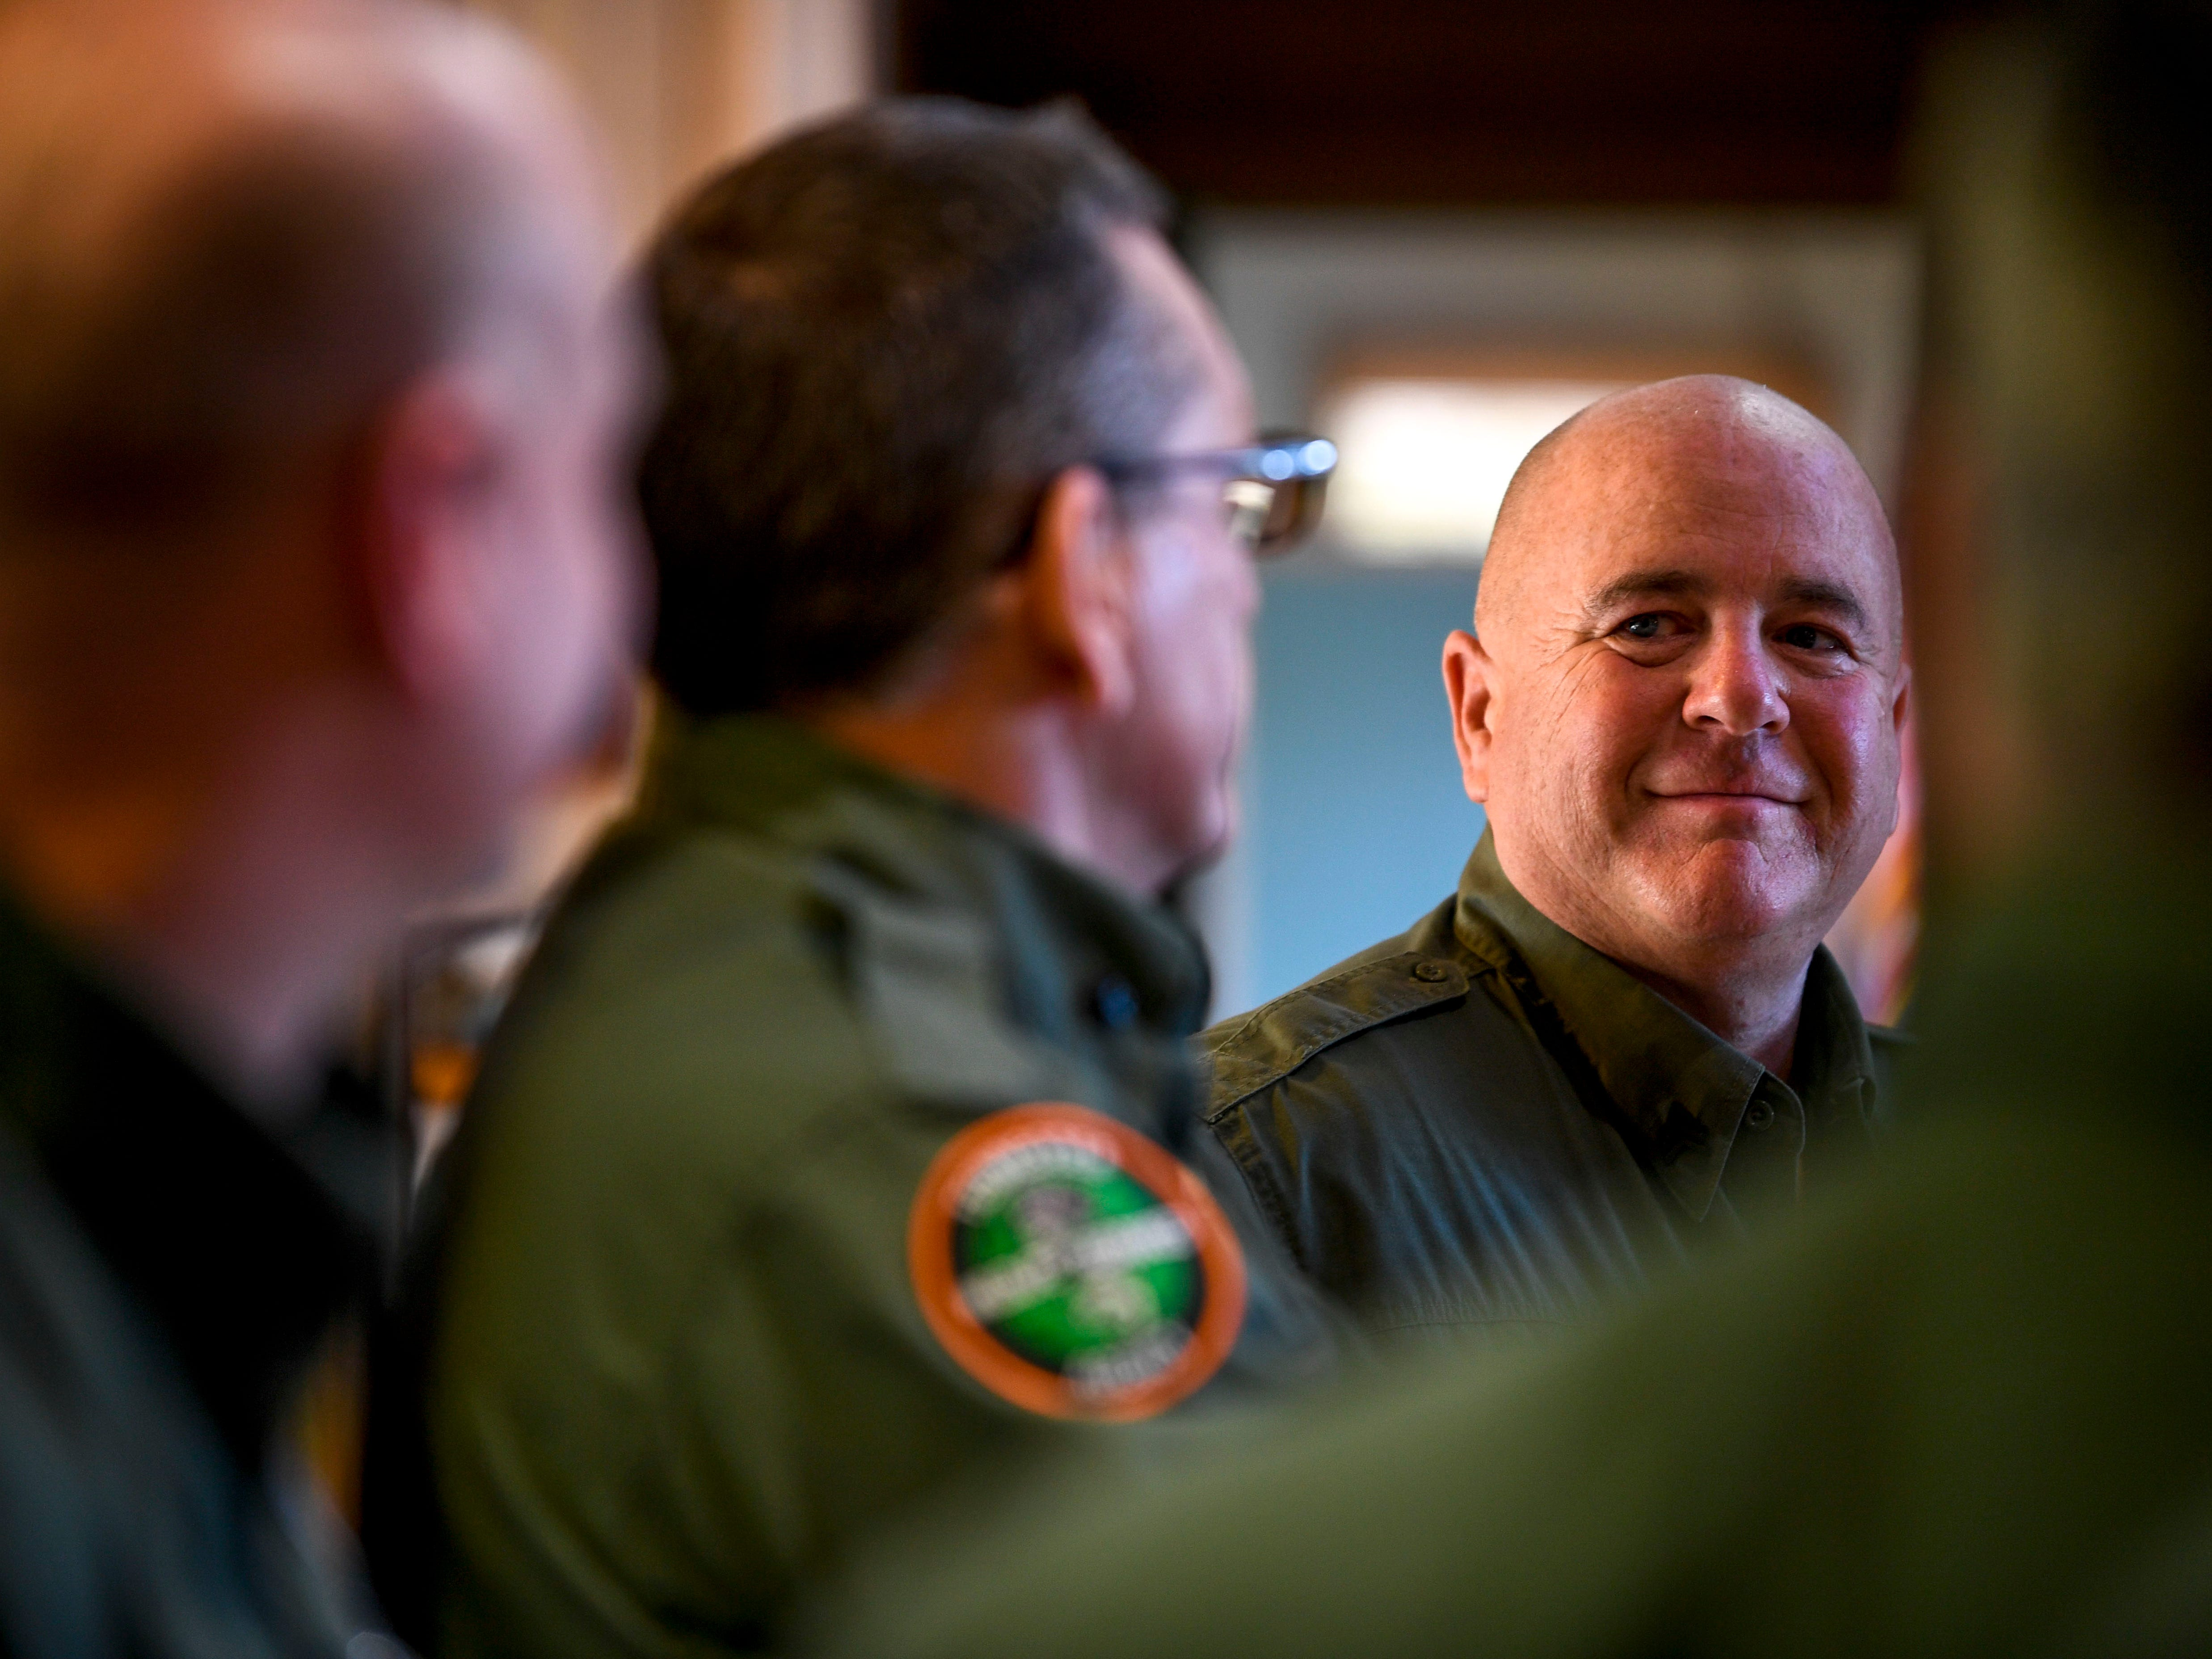 Sgt Keith Mitchell of Chester County chats with other Wildlife Resource Officers on National Law Enforcement Day at the Tennessee Wildlife Resource Agency Region One offices in Jackson, Tenn., on Wednesday, Jan. 9, 2019.